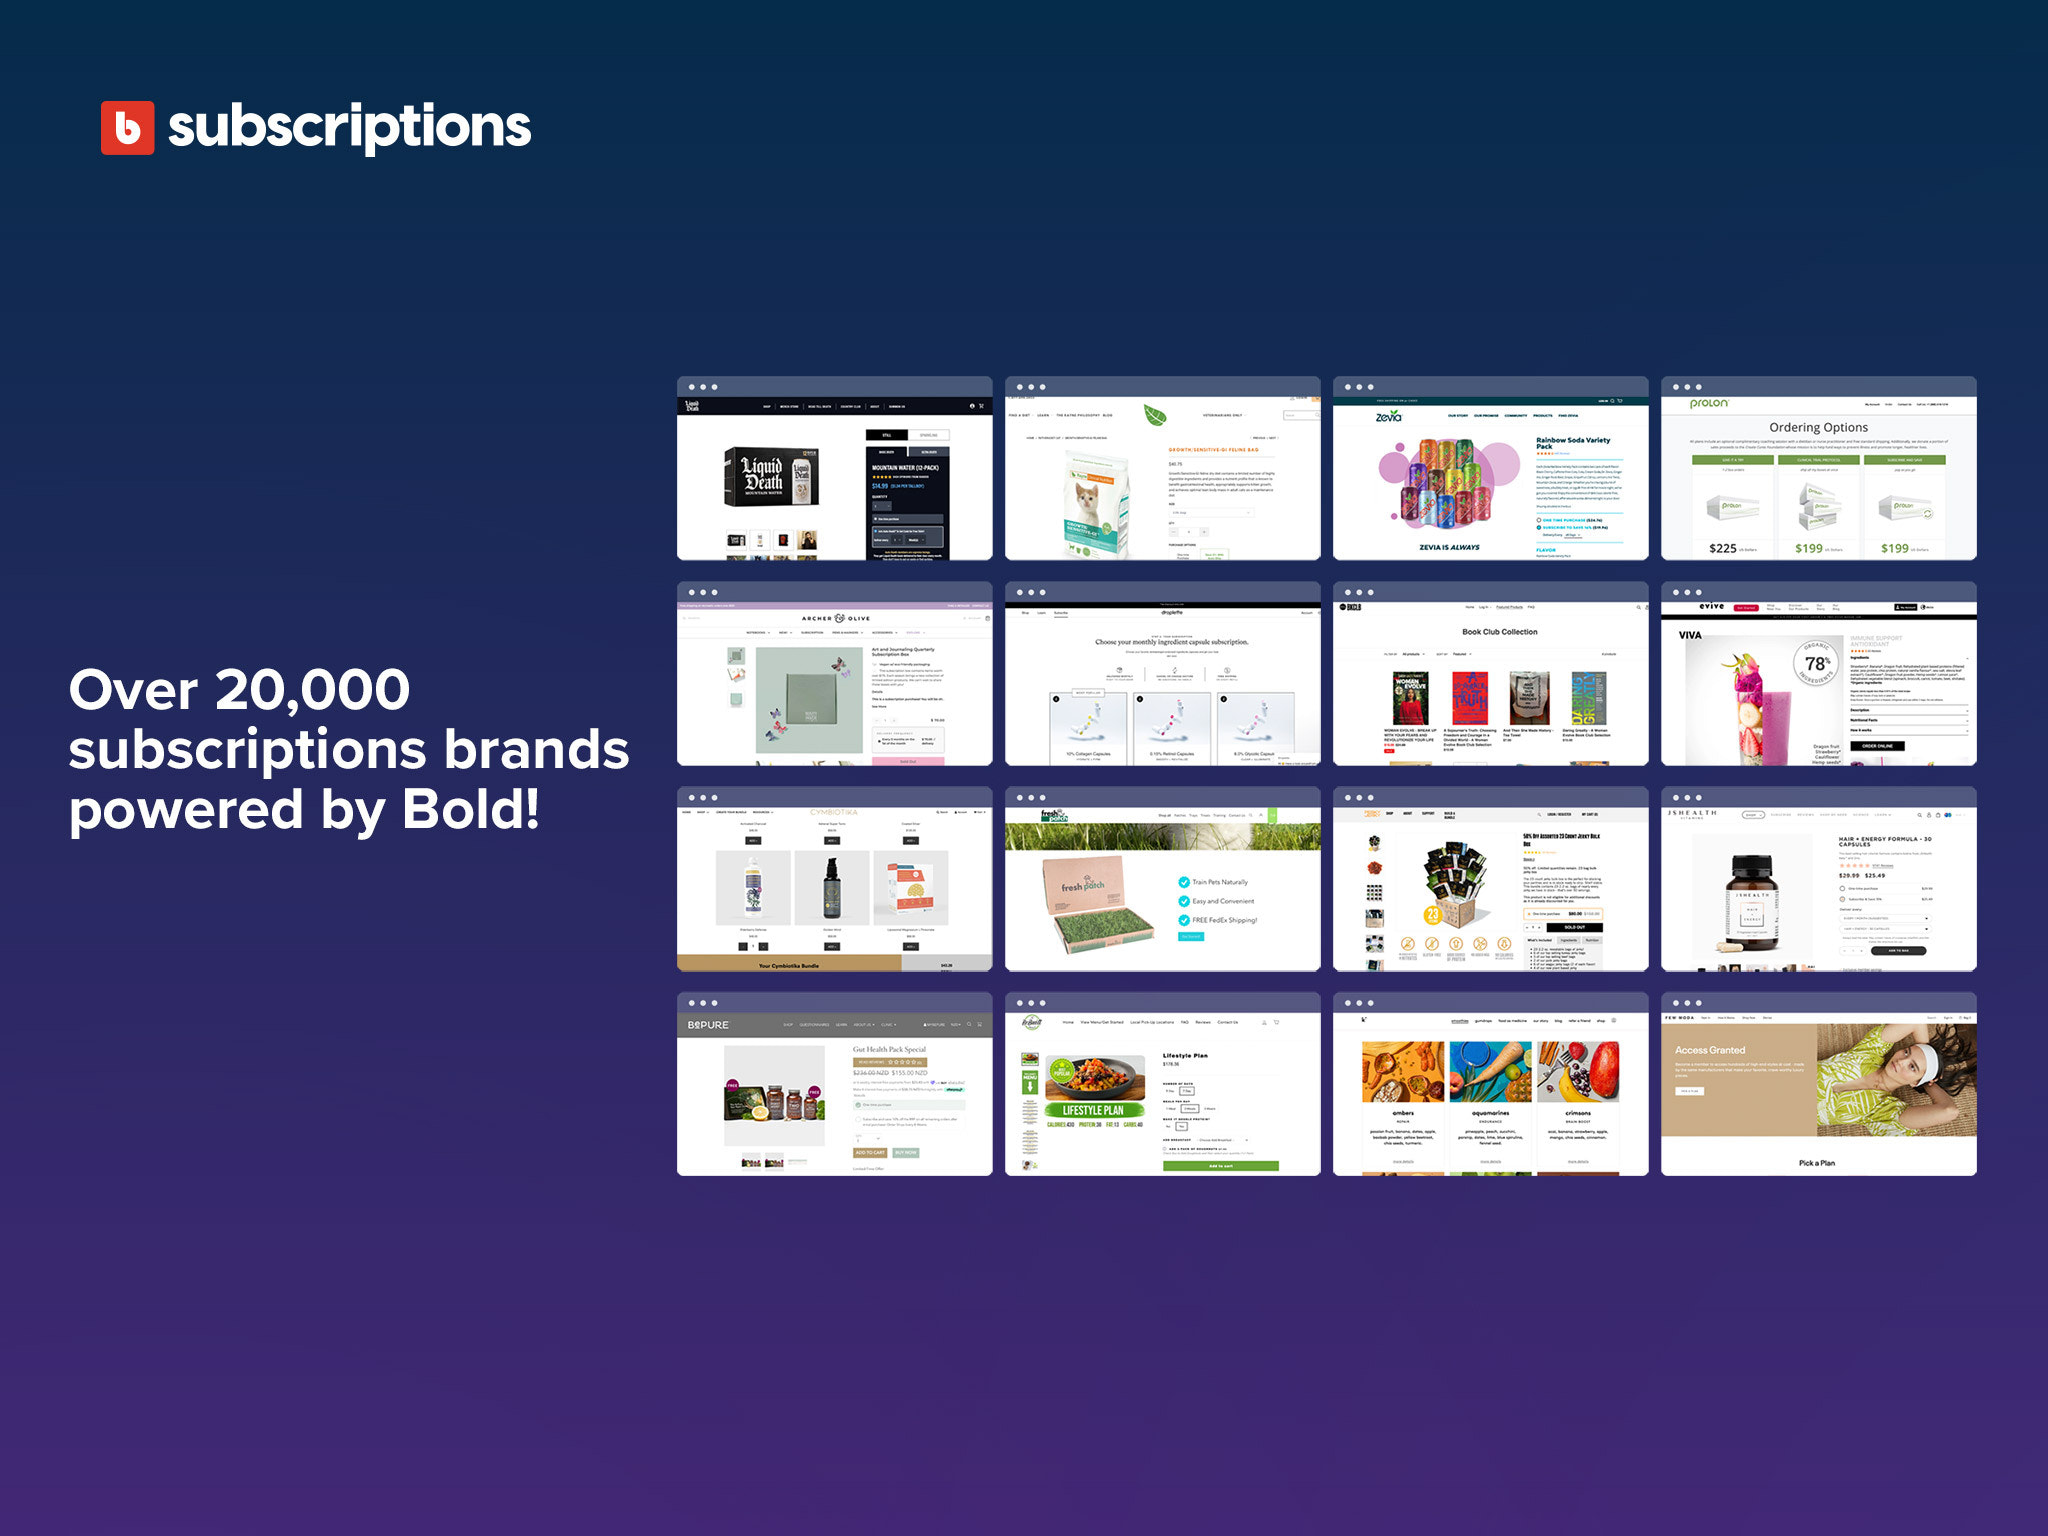 Over 20,000 subscriptions brands powered by Bold!